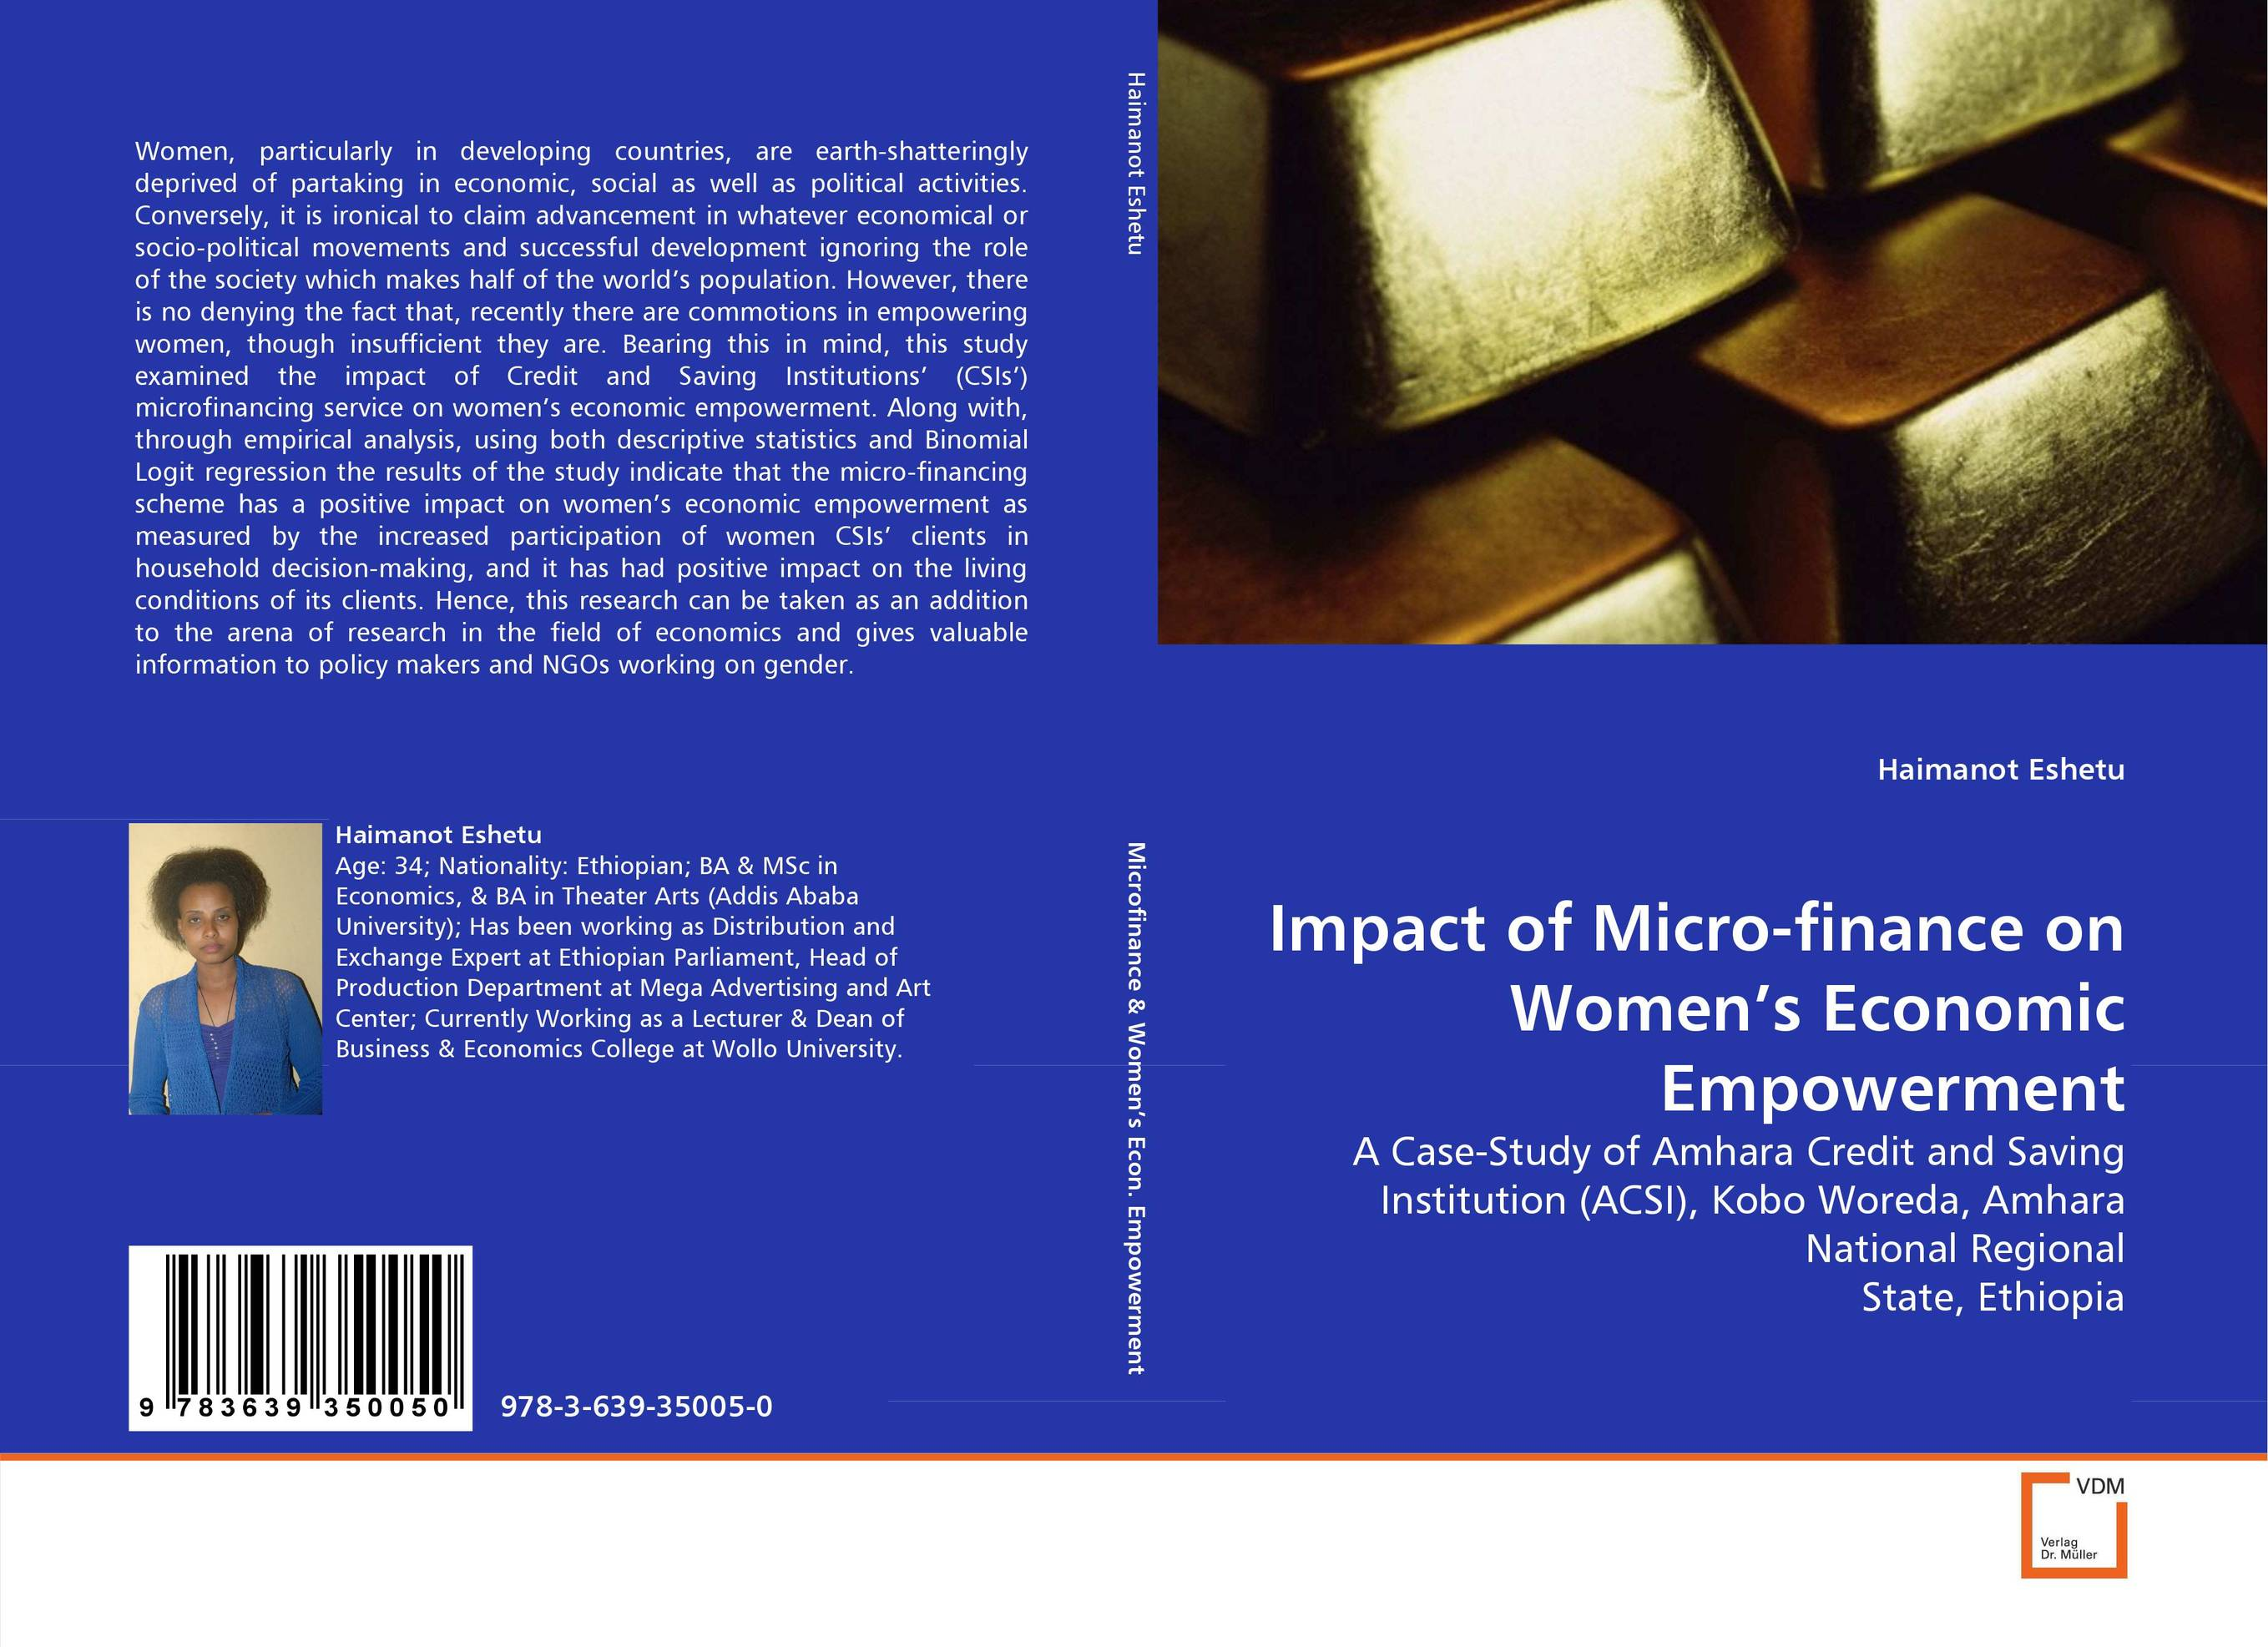 Impact of Micro-finance on Women''s Economic Empowerment цена и фото